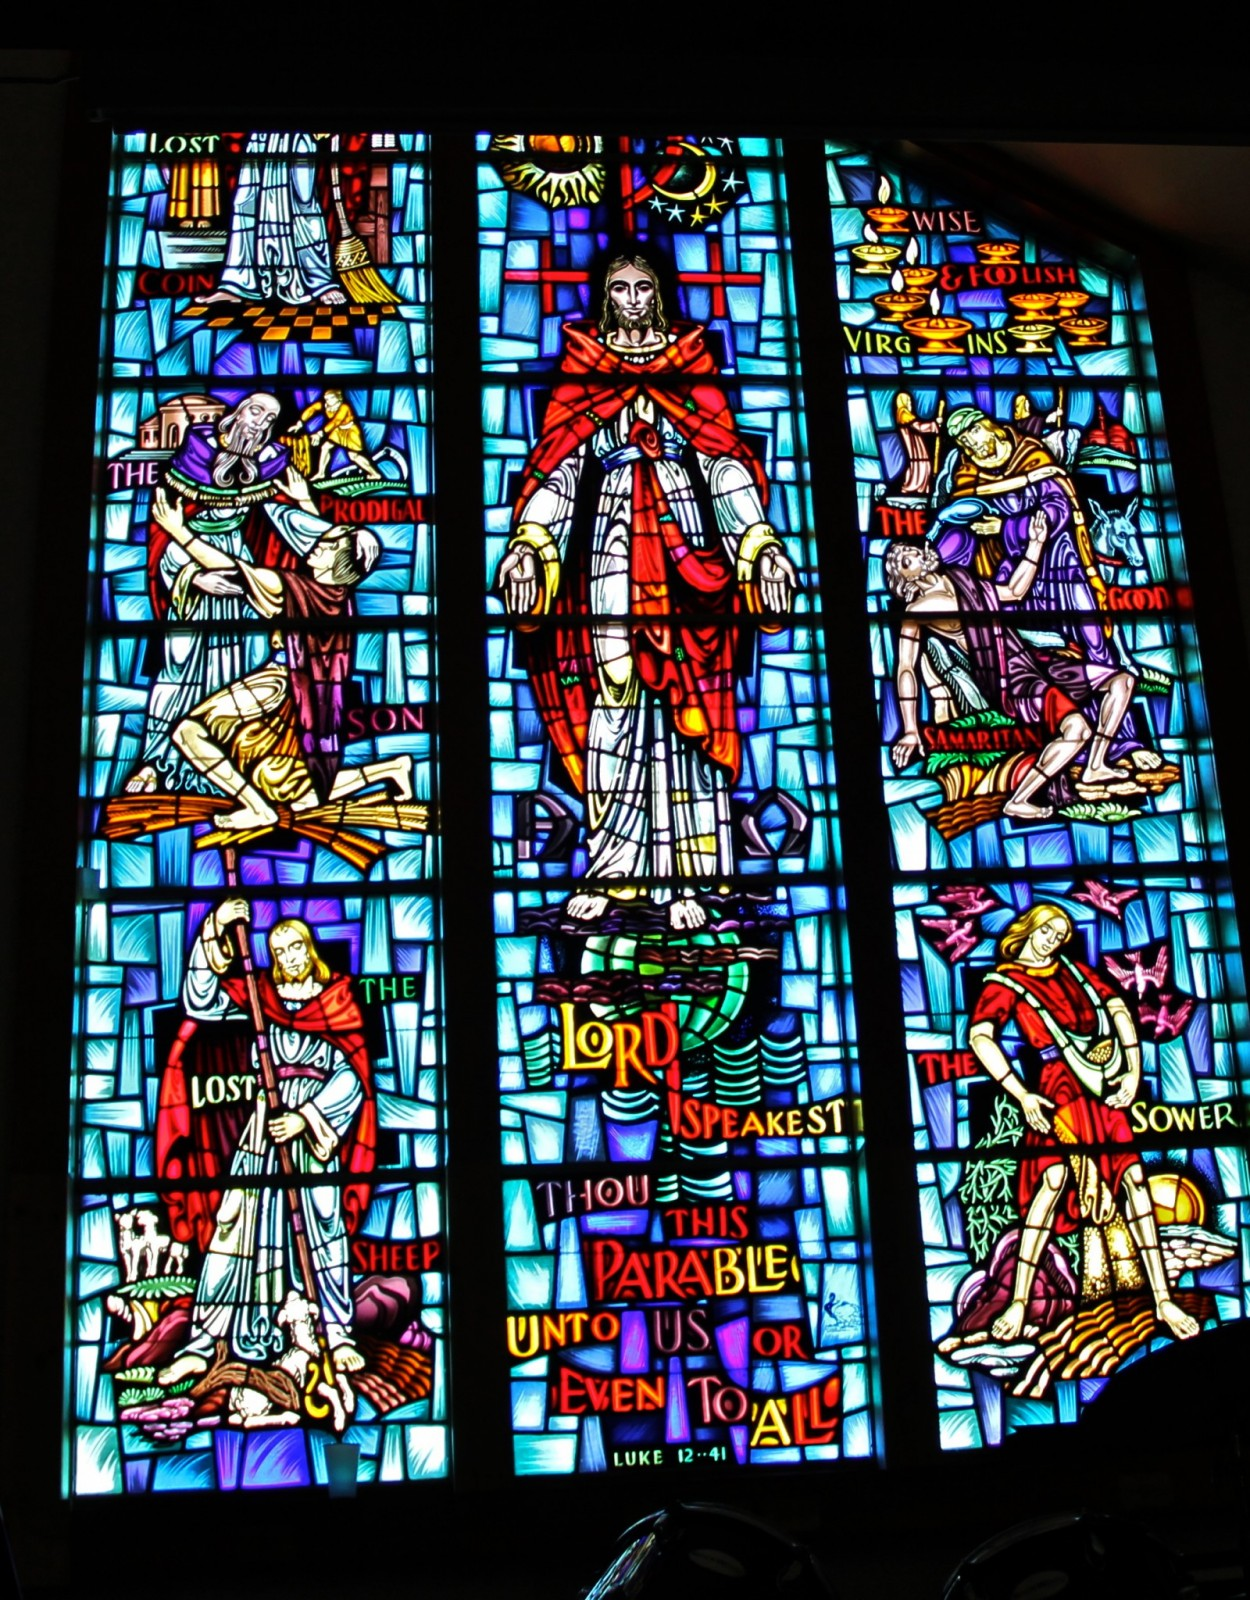 Sea Isle City Methodist Church stained glass window parables